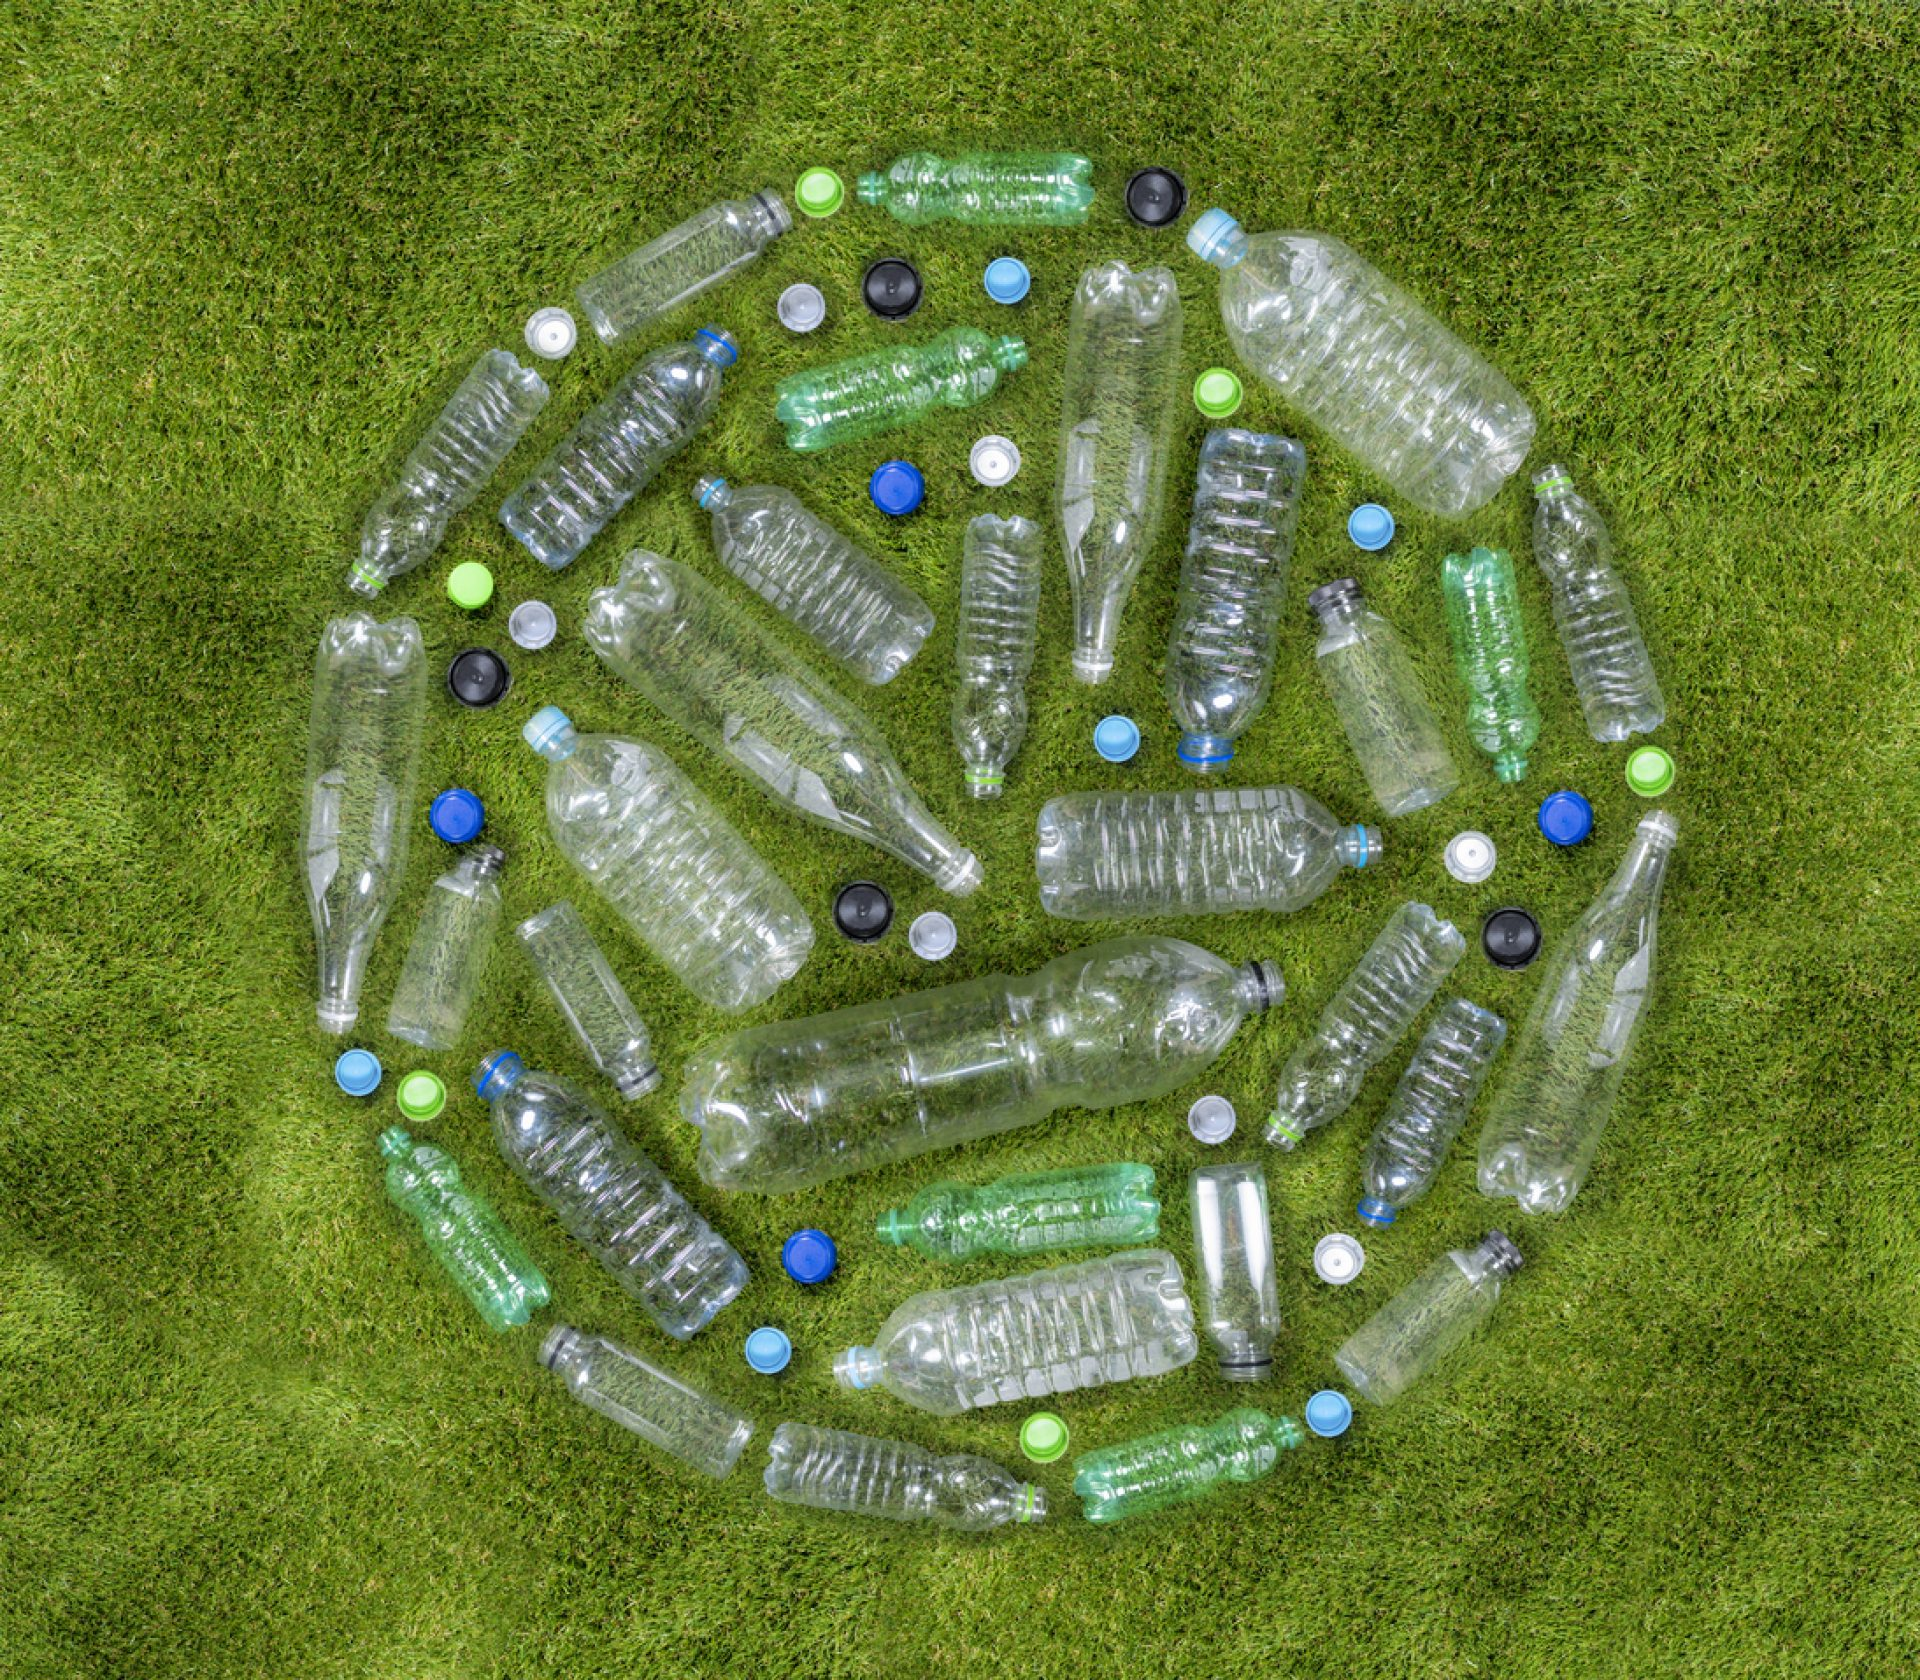 Plastic drinks bottles arranged in a circle on grass